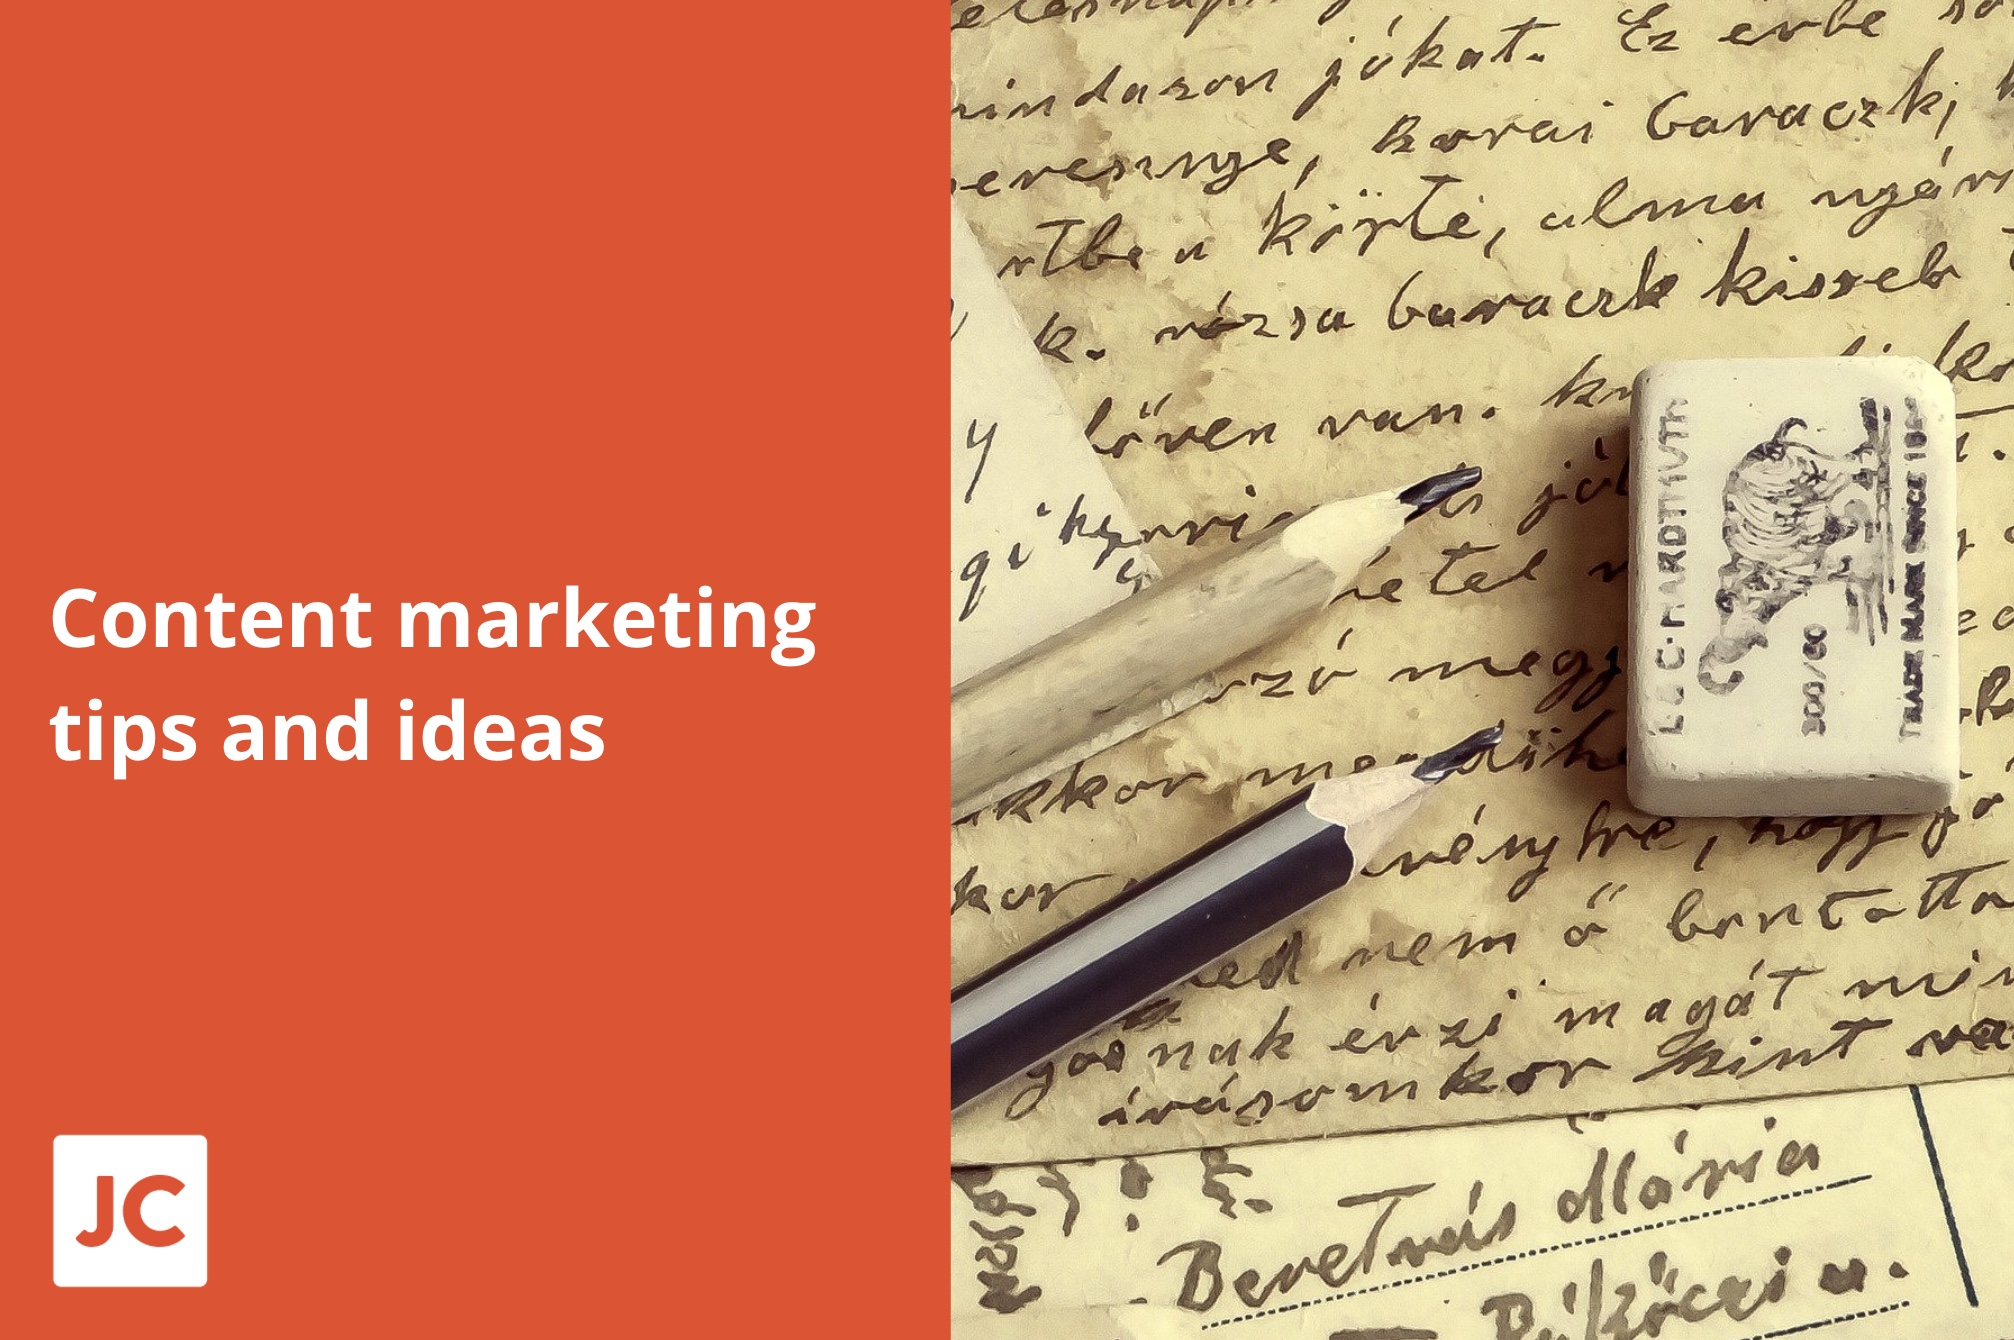 Content marketing, content tips